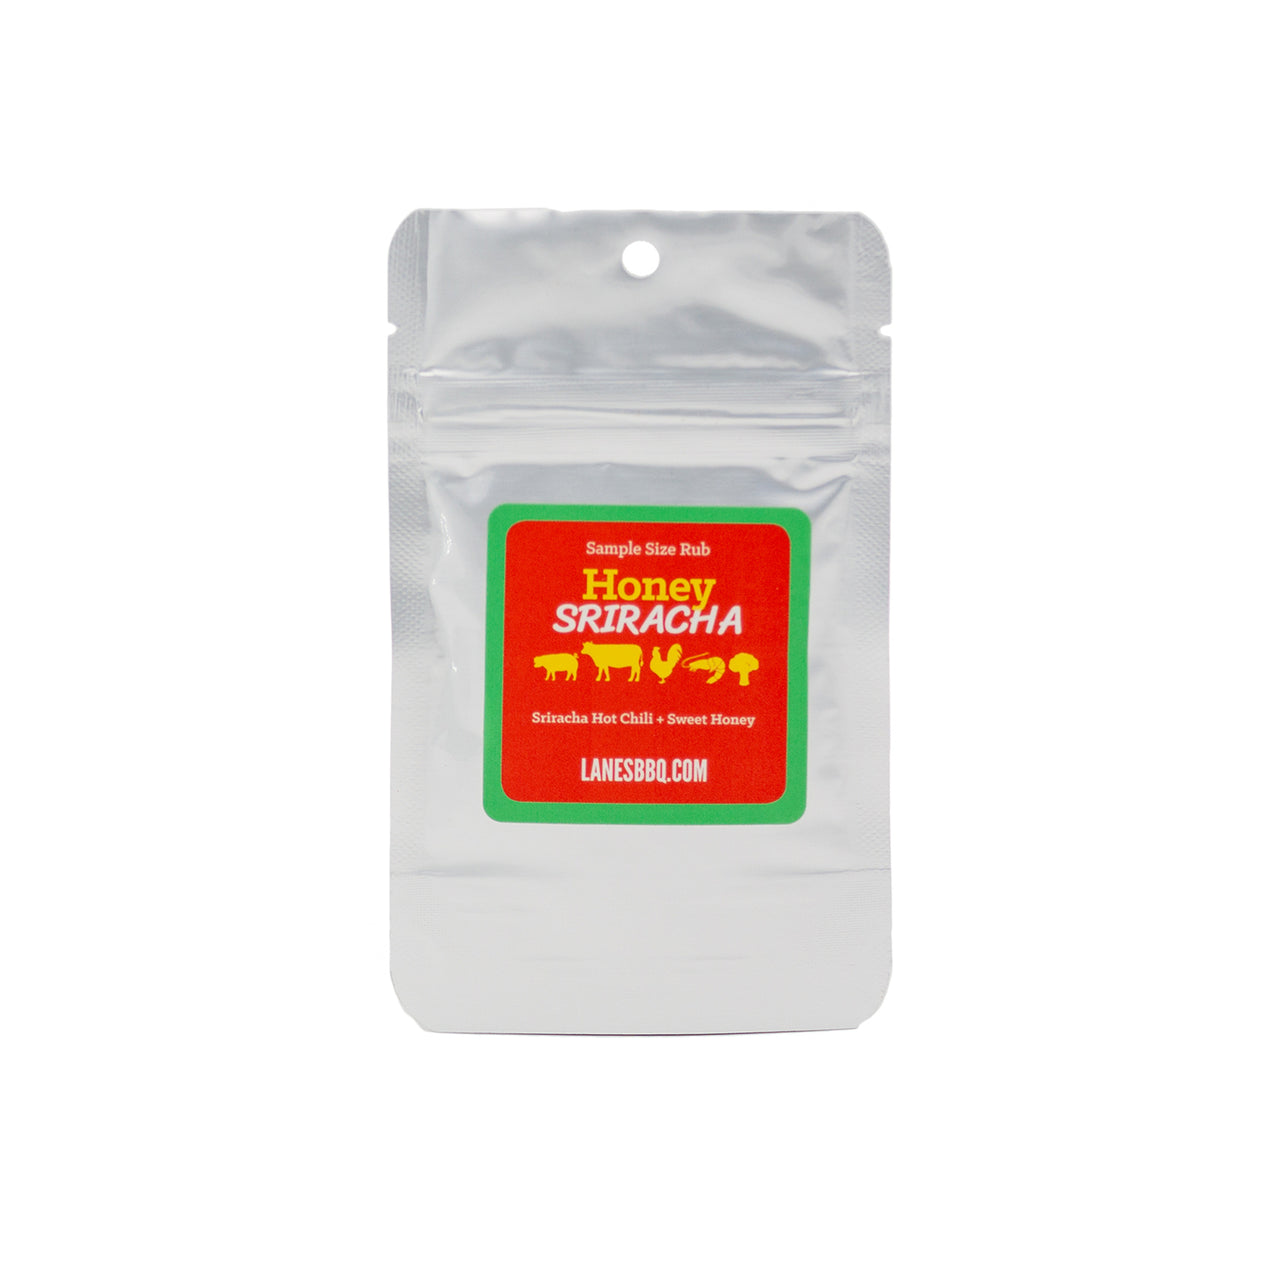 Honey Sriracha Rub - .50 oz Sample Bag